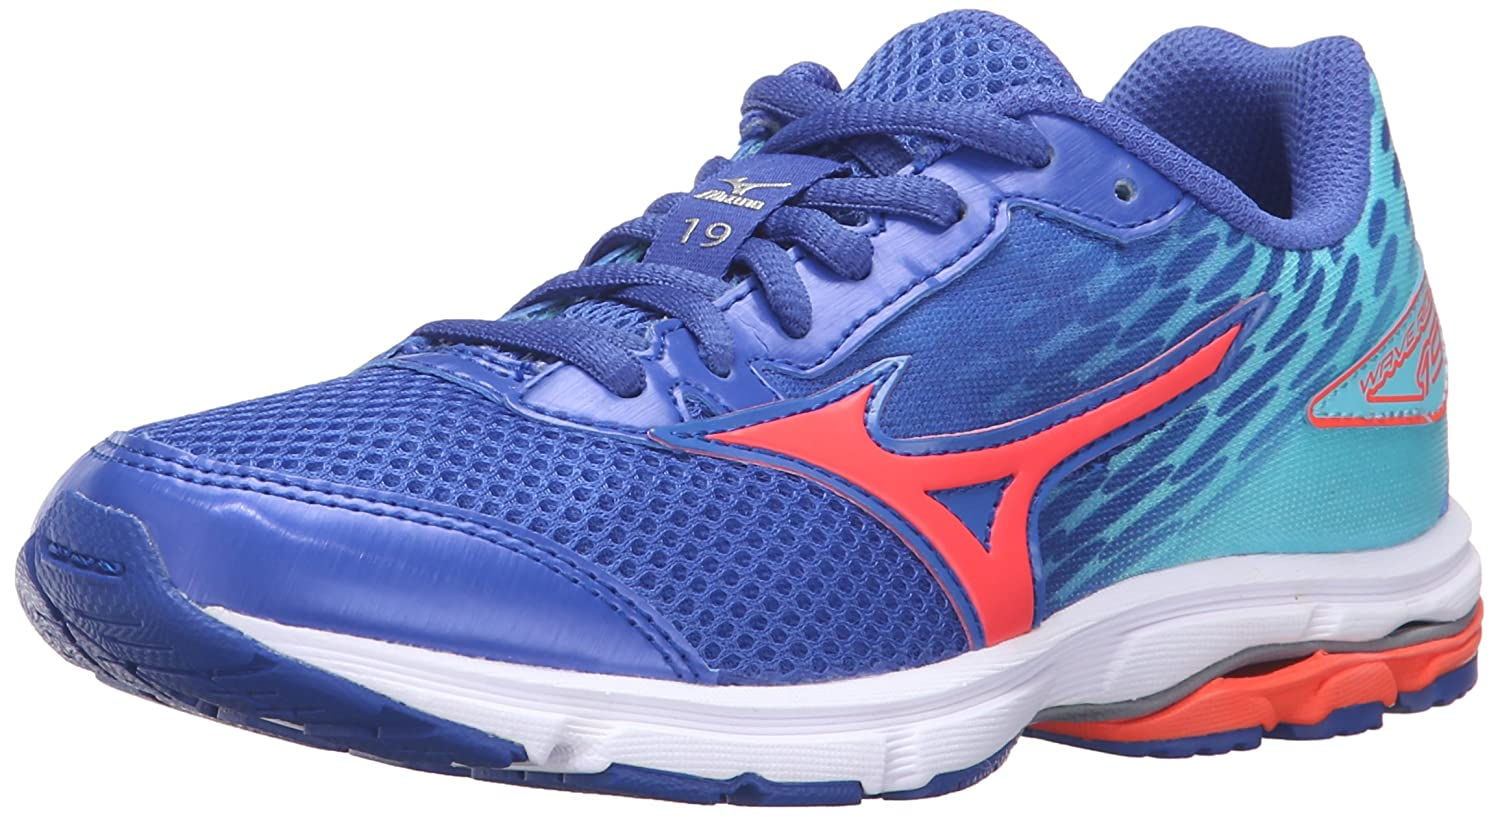 Mizuno Rider Vague 19 Enfants BeOsE